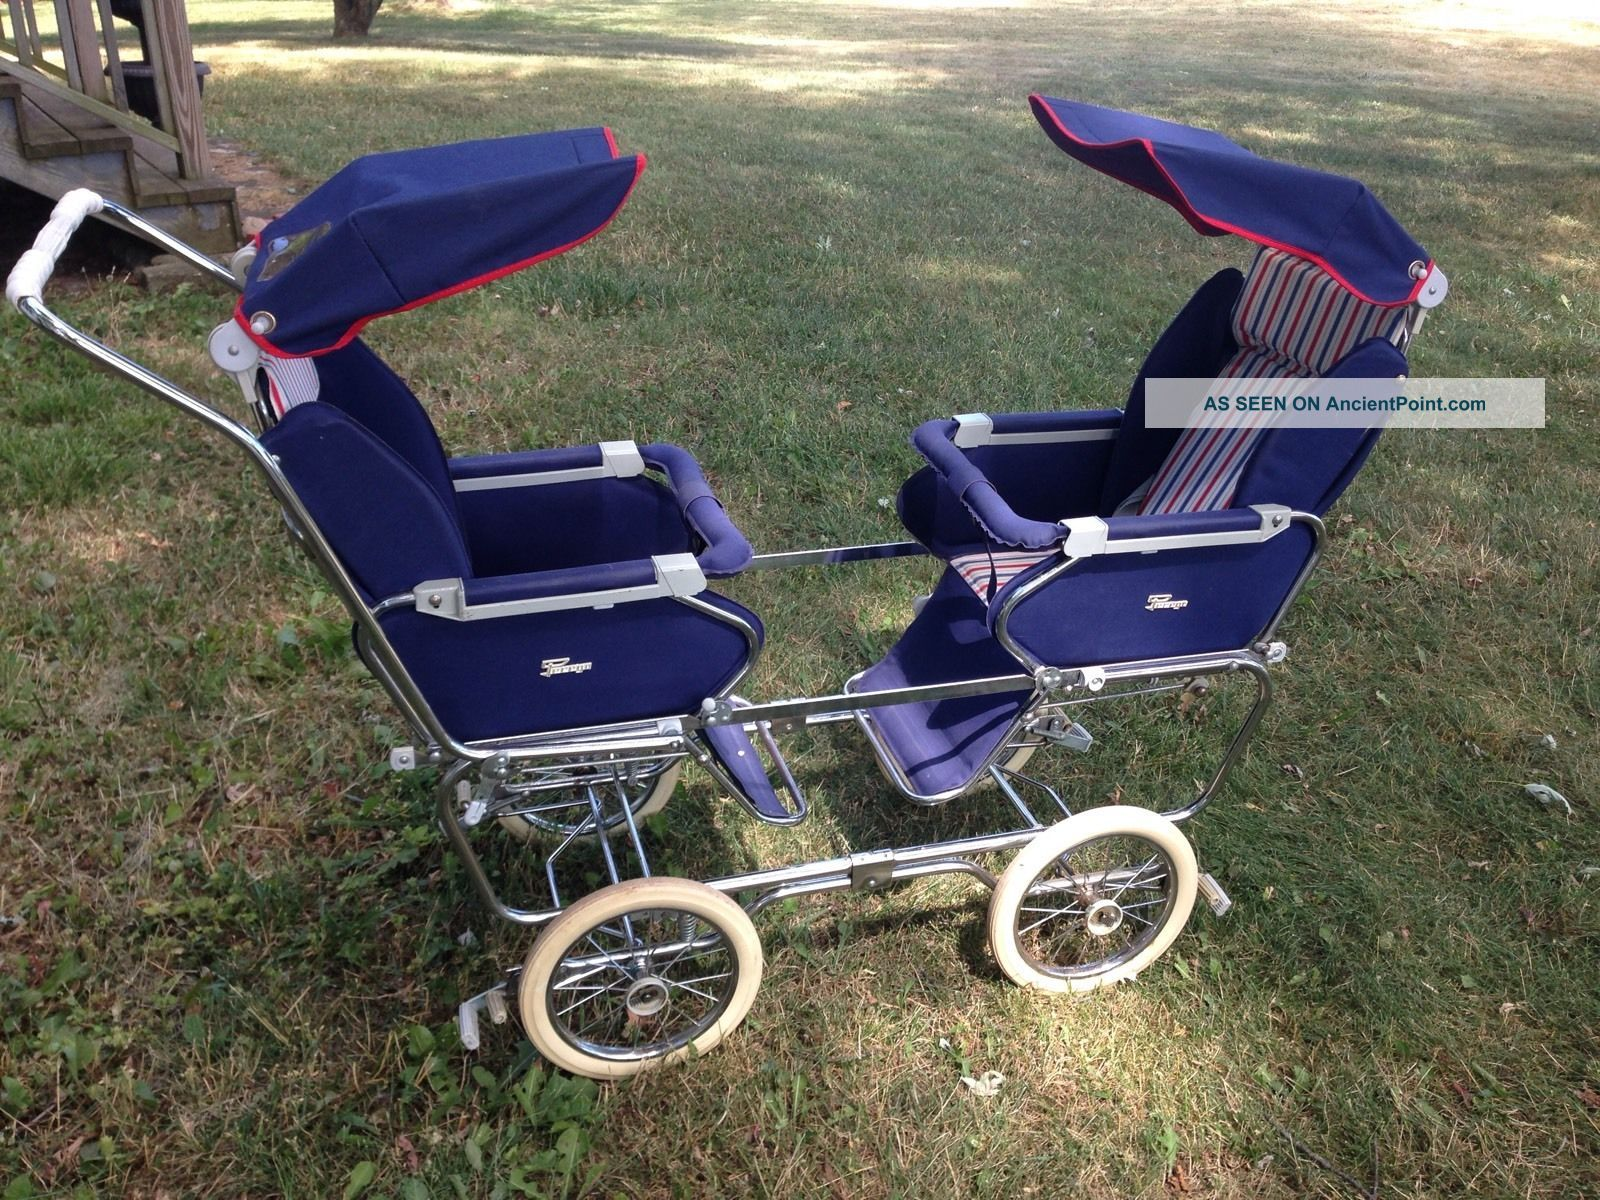 Vintage 1950s Italian Peg Perego Double Twin Stroller Italy Mid Century Pram Old Baby Carriages & Buggies photo